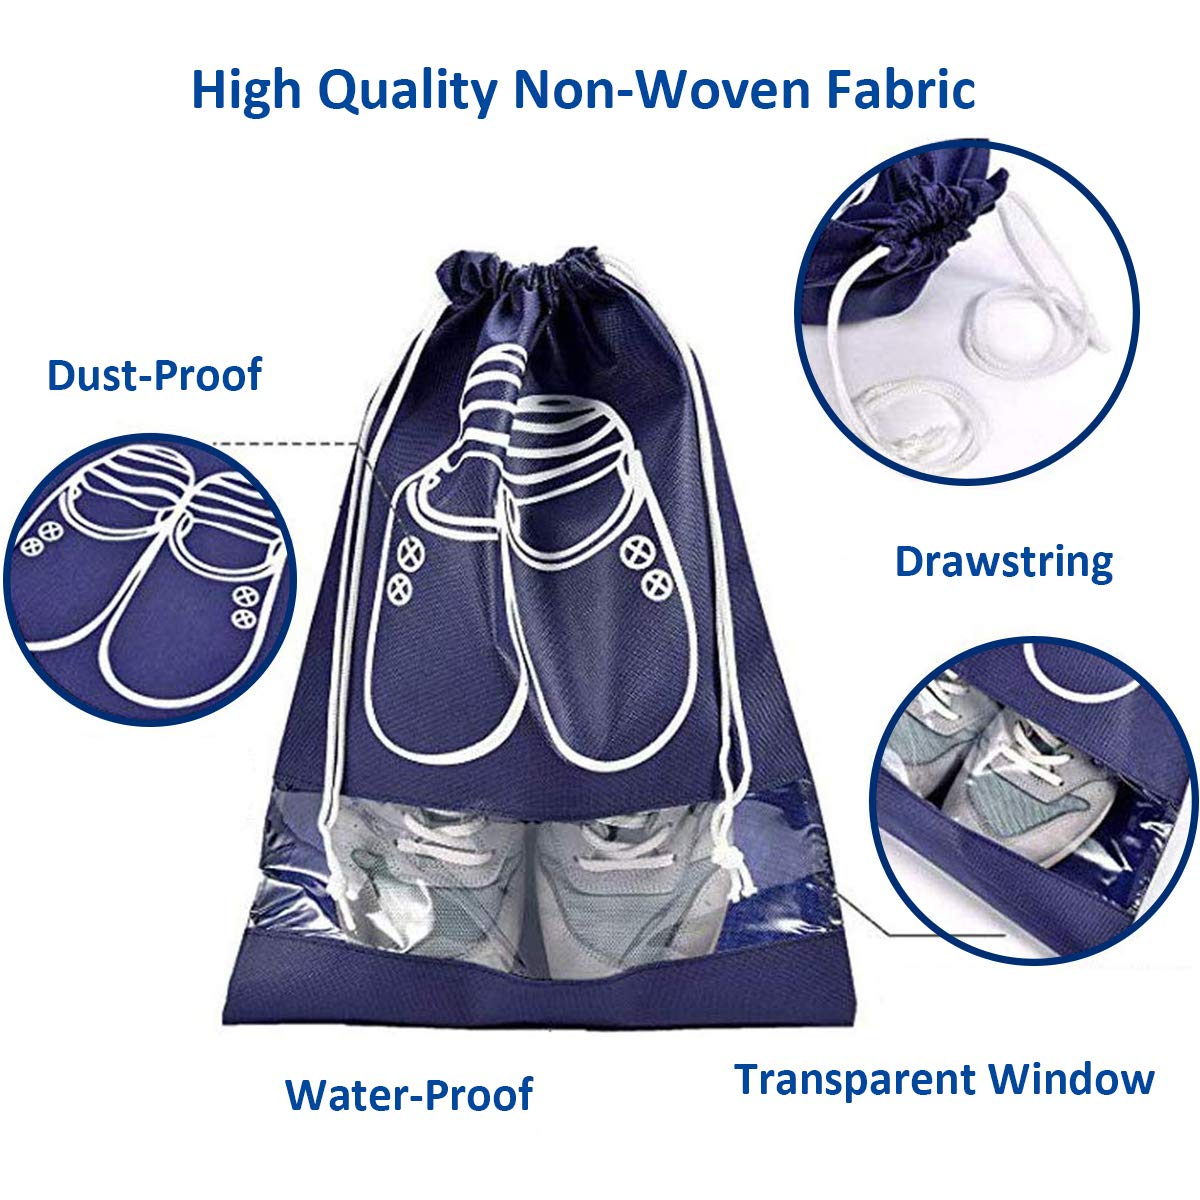 10 Packs Portable Travel Shoe Organizer, AIRERA Large Storage Bag for Men Shoes Dust-proof Breathable Transparent Window for Boots, High Heel Drawstring, Space Saving Storage Bags (45*32CM, Navy Blue)